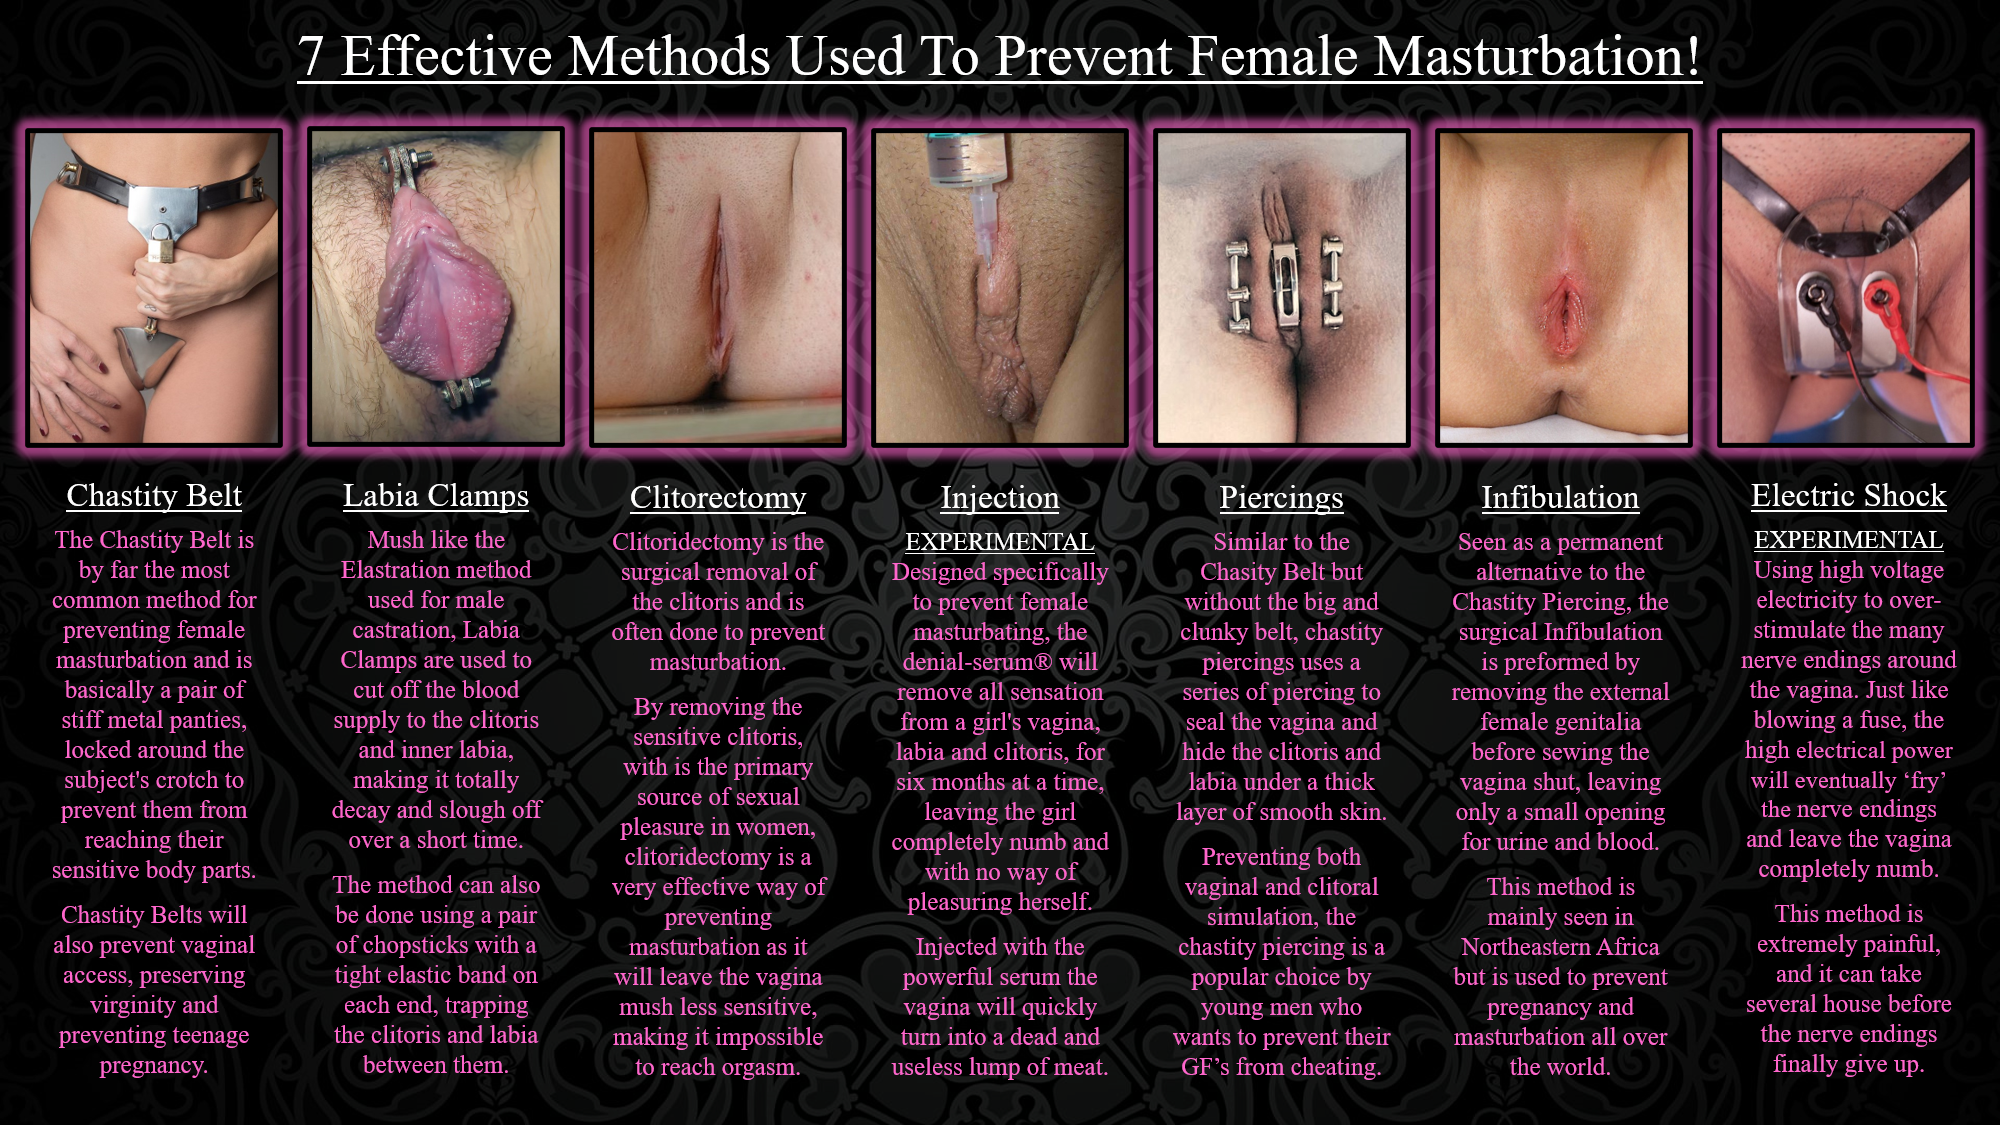 The thinking woman's guide to sex toys